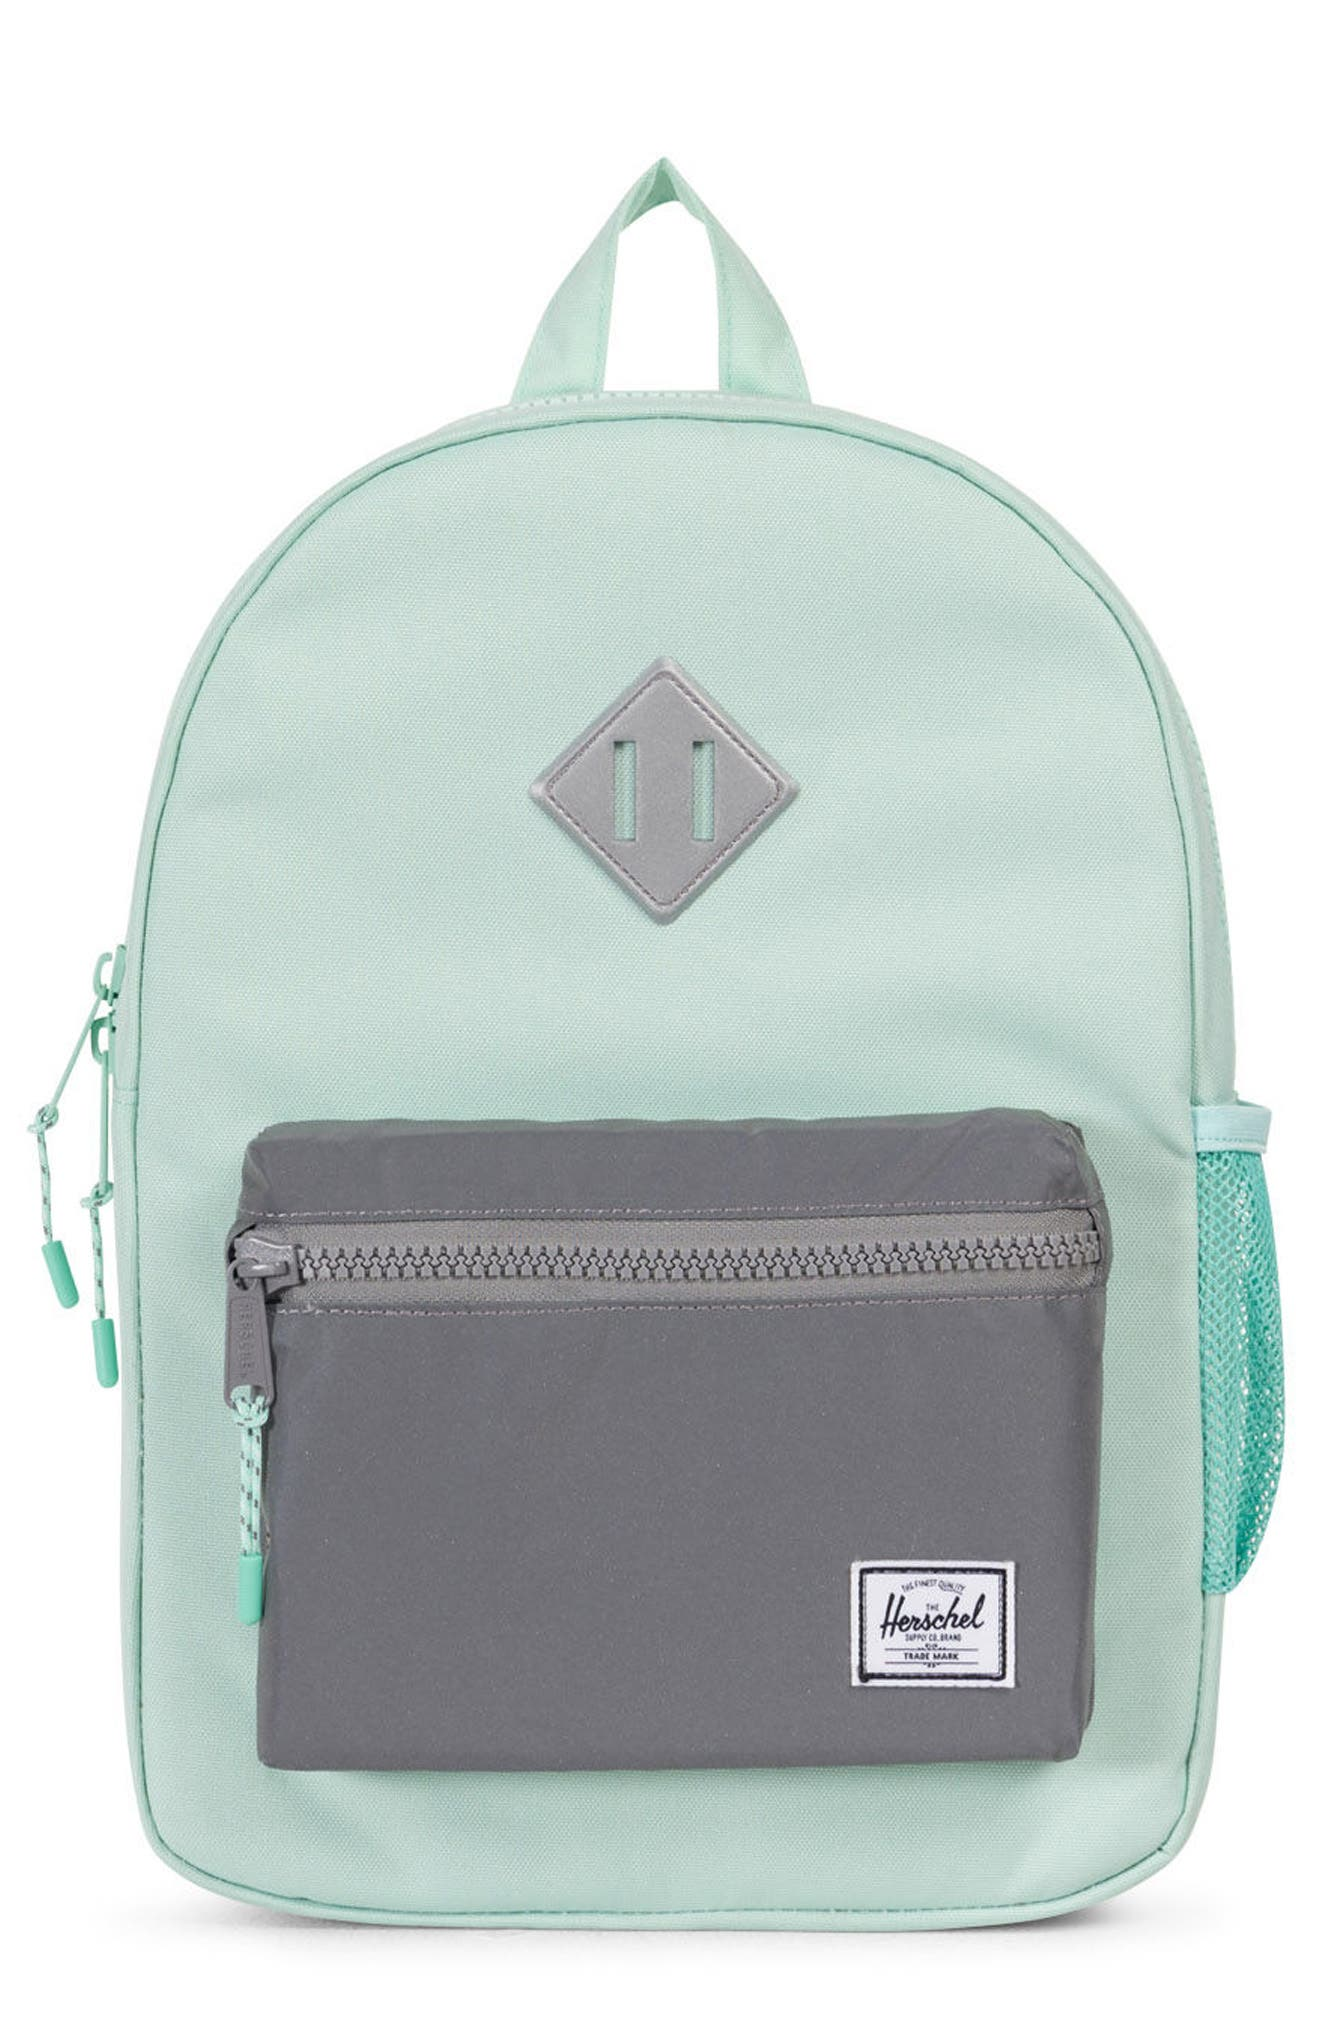 Heritage Backpack,                         Main,                         color, Yucca/ Reflective Rubber